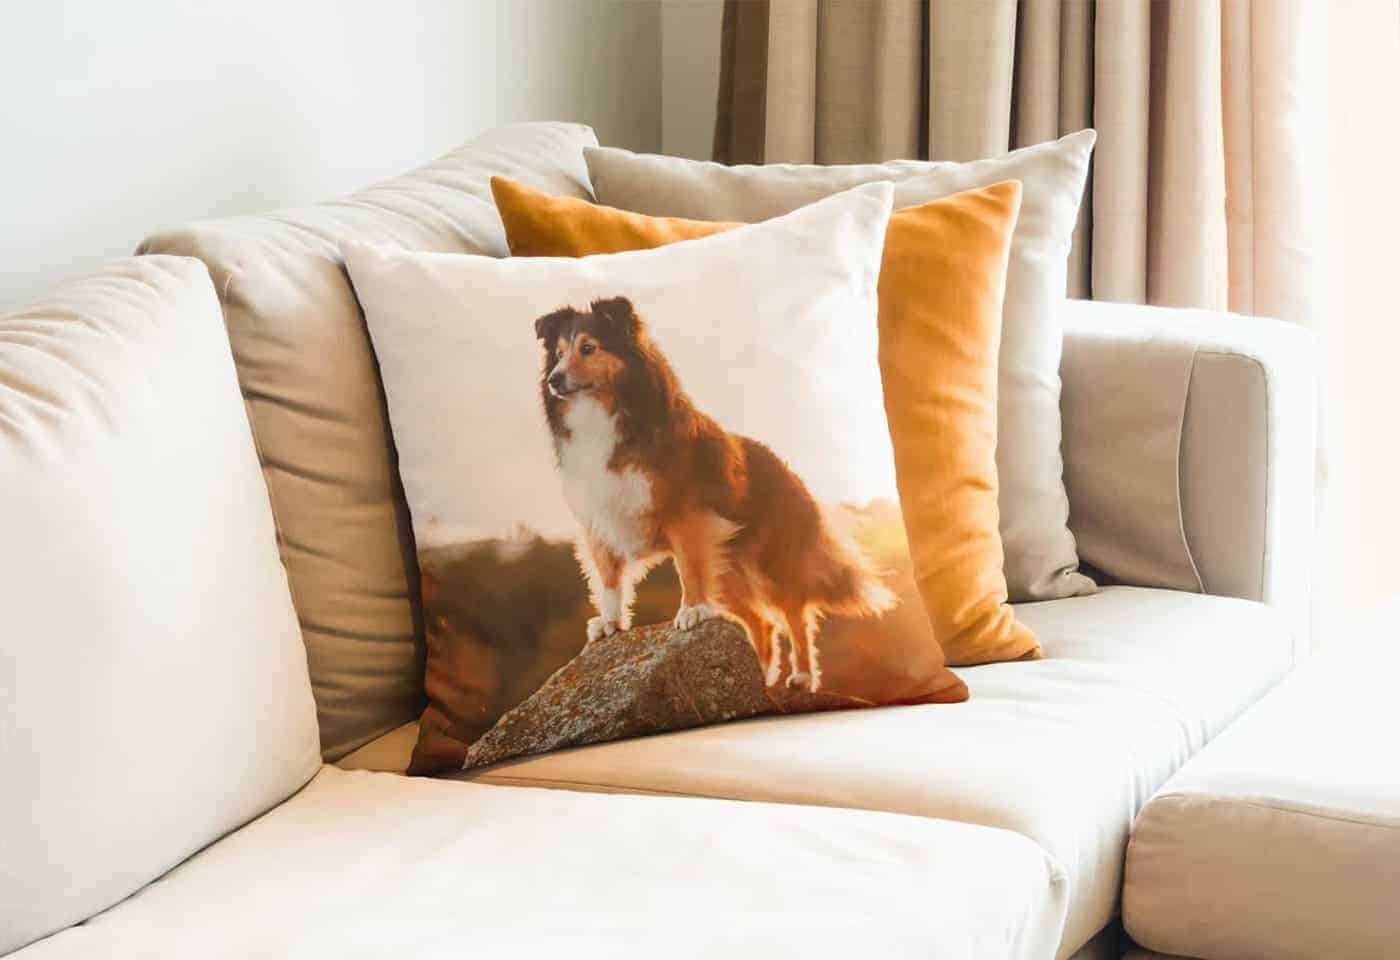 CanvasPop throw pillows sample